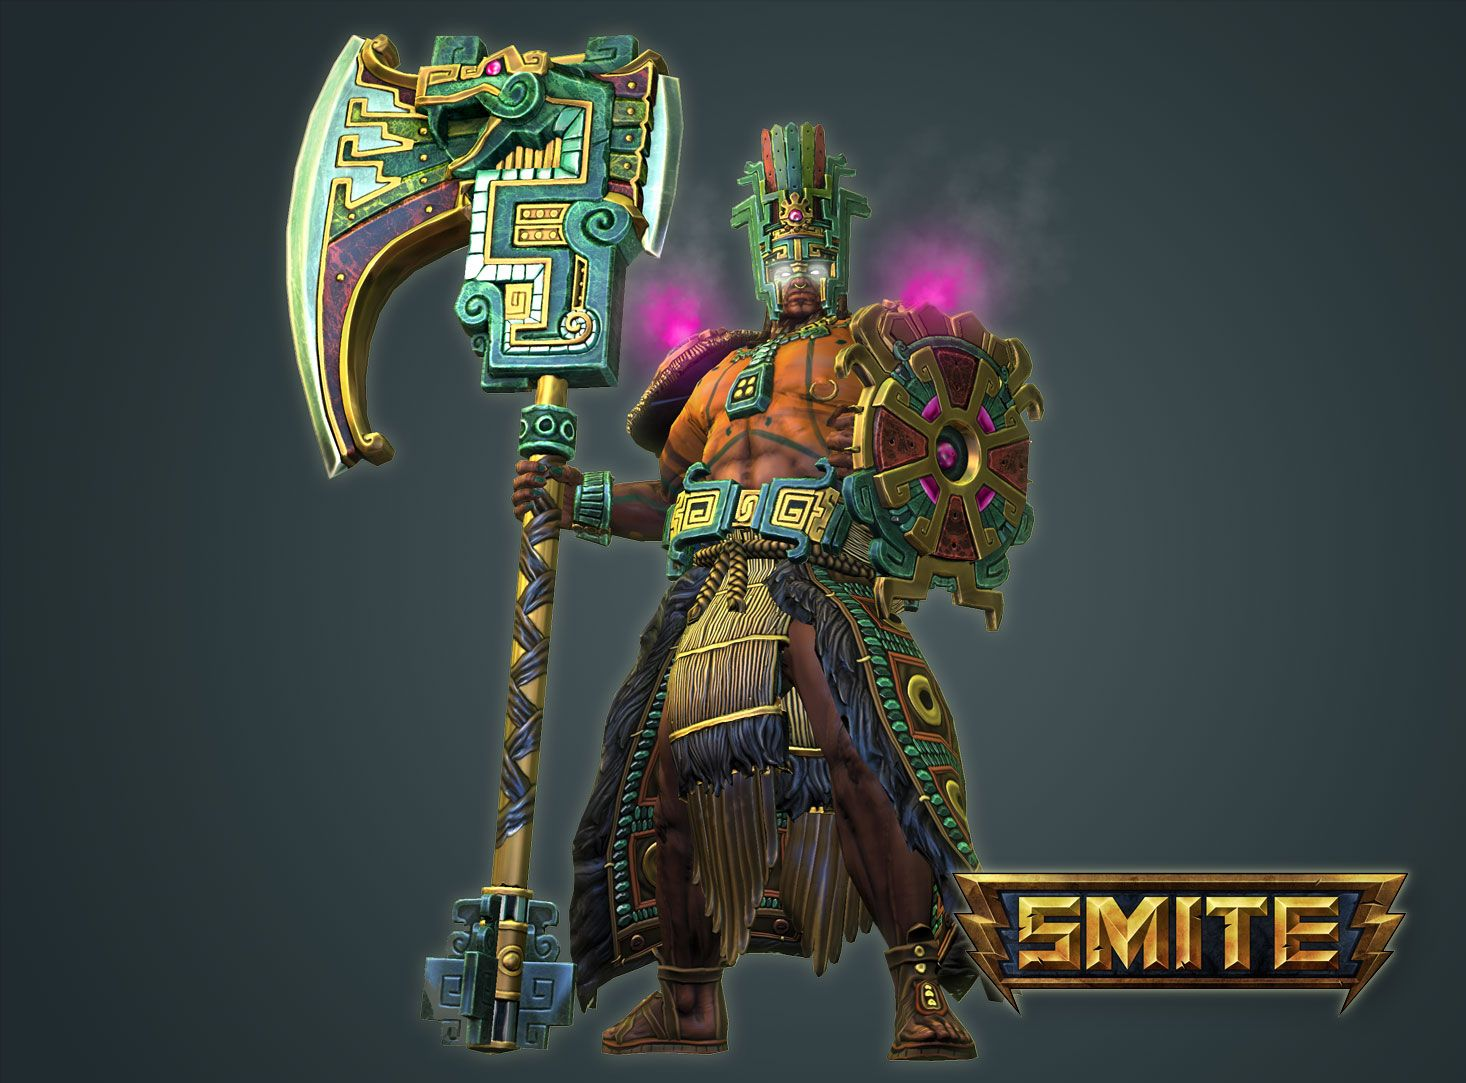 Chaac the mayan god of rain from the game smite